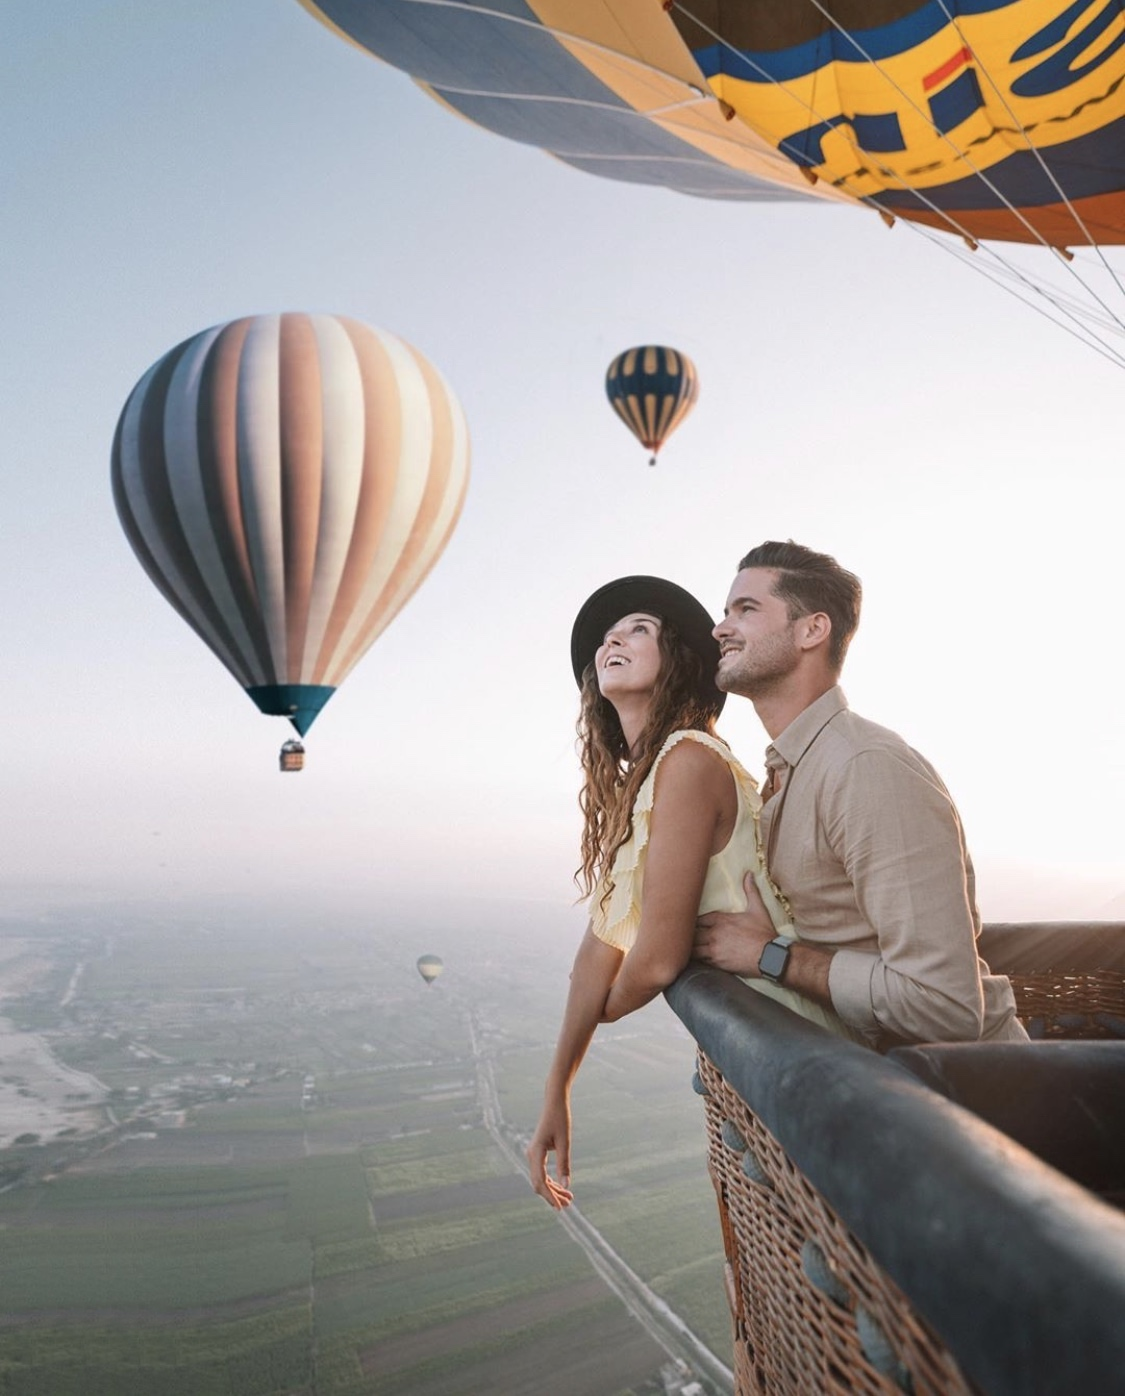 Explorerssaurus - a couple in a hot air balloon over the Valley of Kings in Egypt